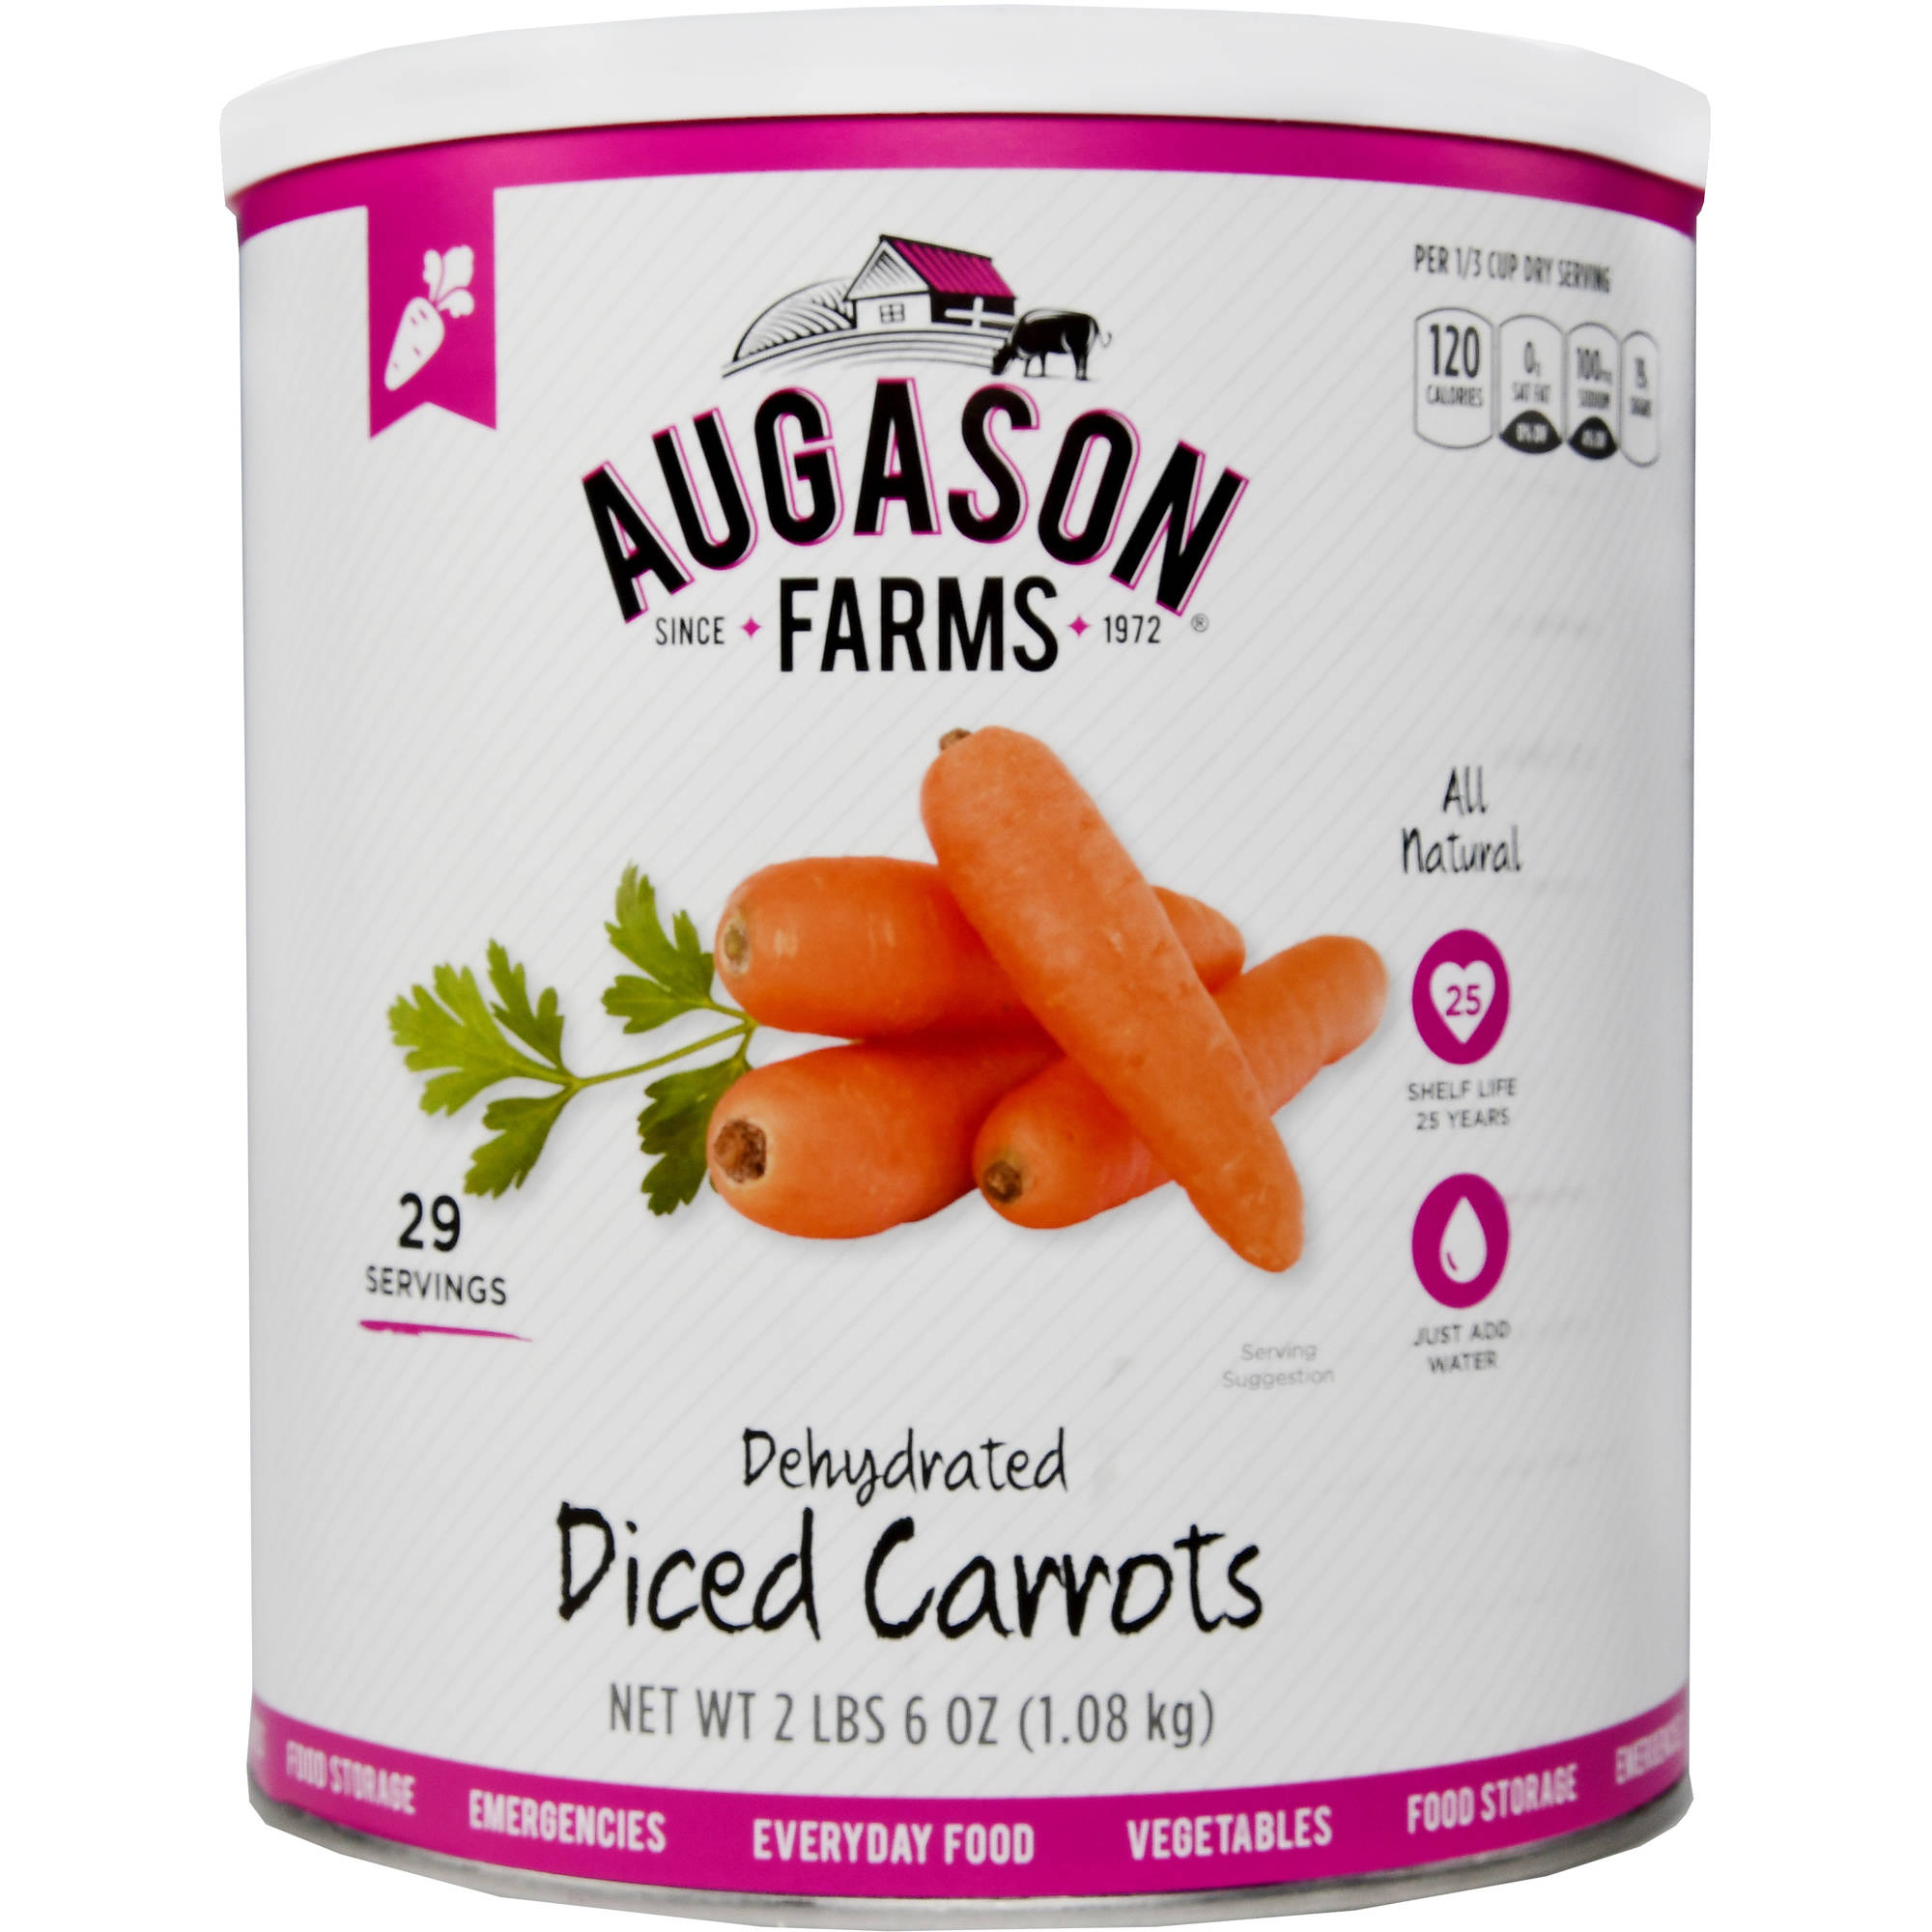 Augason Farms Emergency Food Dehydrated Diced Carrots, 38 oz